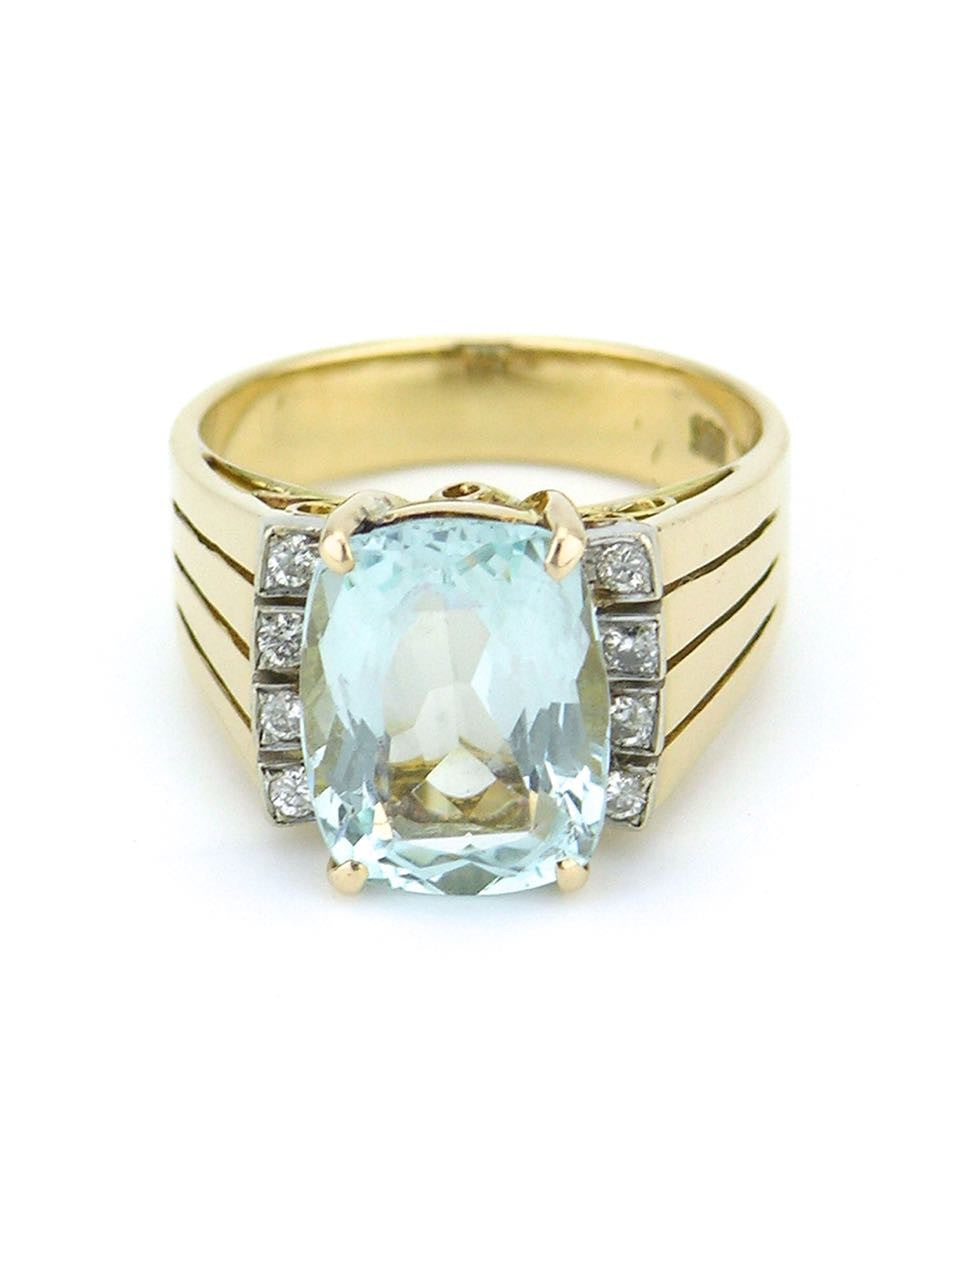 American aquamarine diamond and 14k yellow gold ring